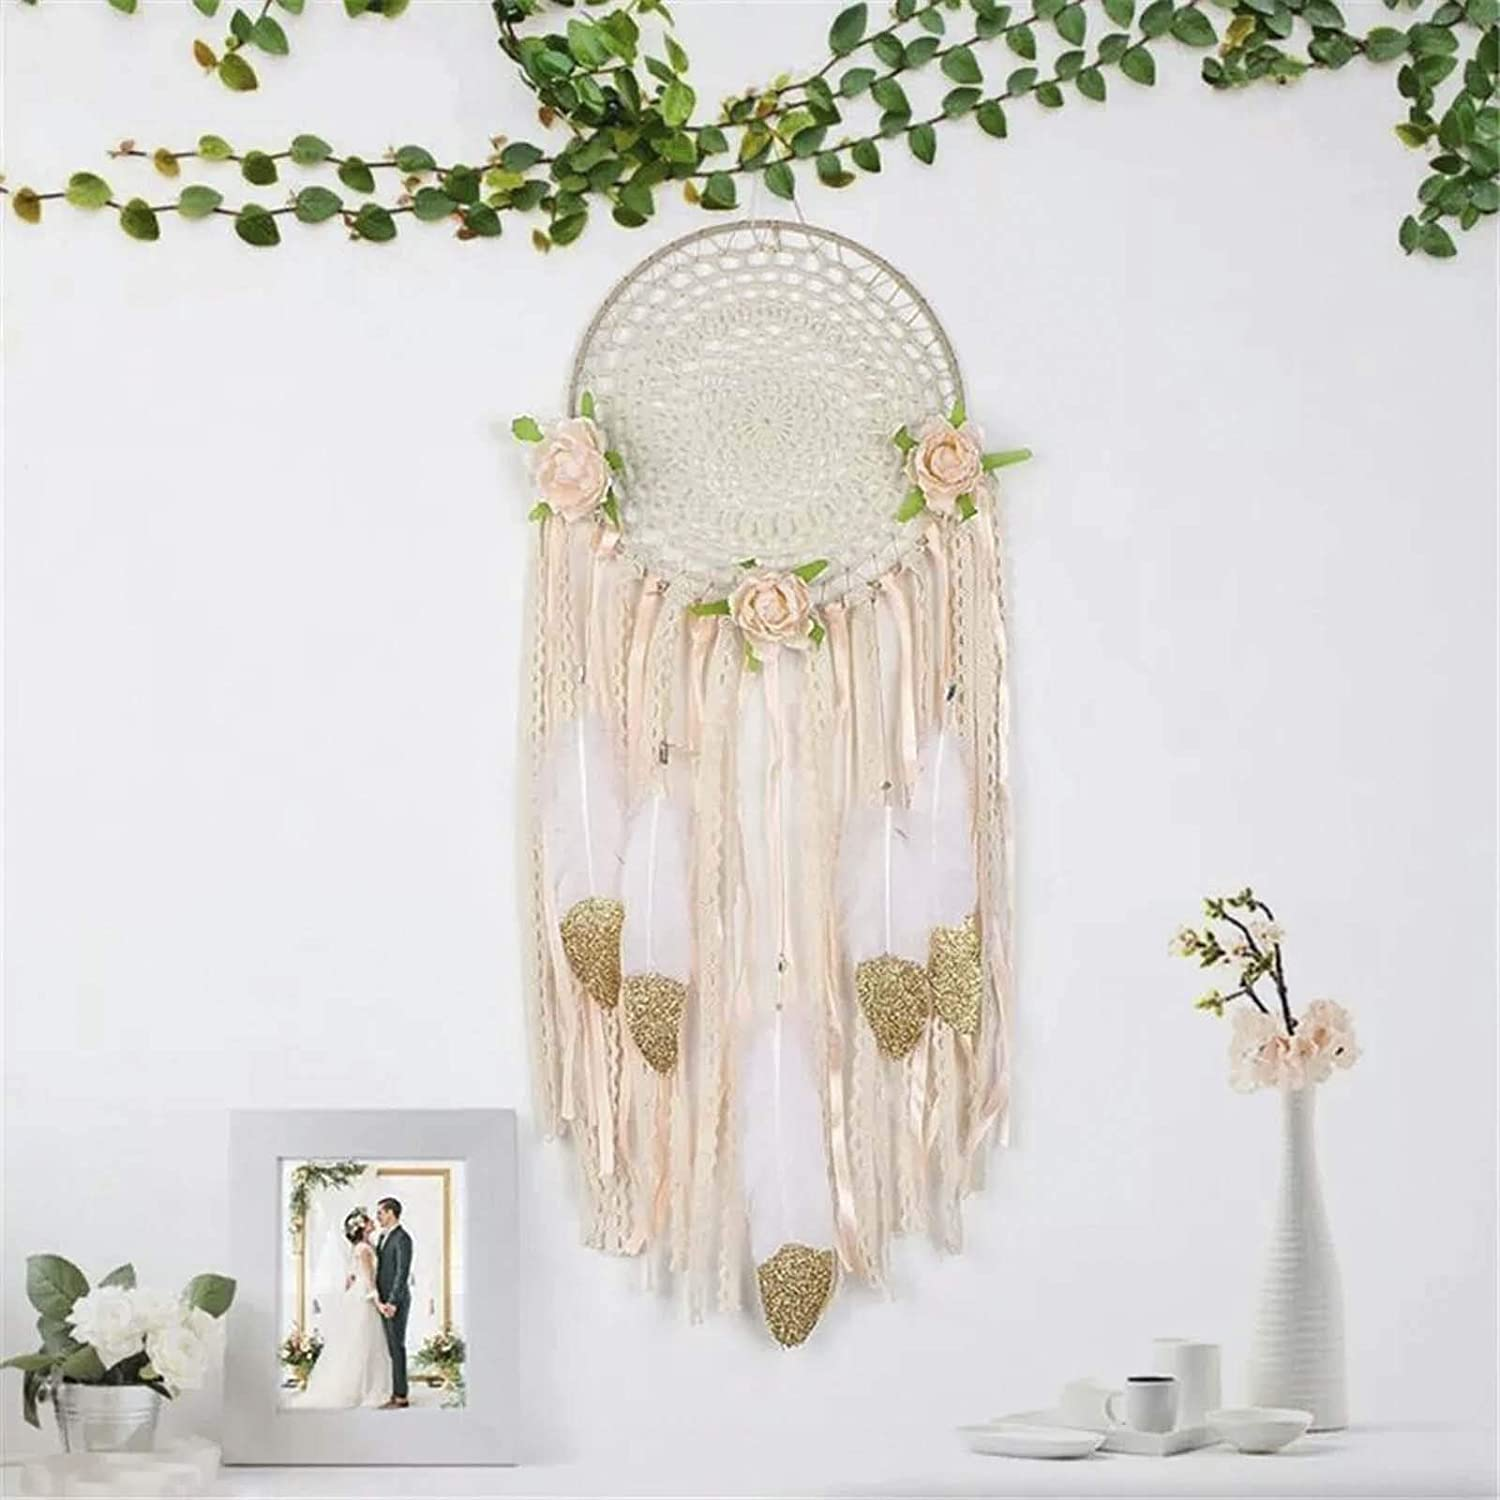 Vlovelife Boho Dream Catcher Handmade Feathers Dreamcaters with Tassels & Flowers for Wall Hanging Decor Ornament Wedding Baby Shower Birthday Party Decorations